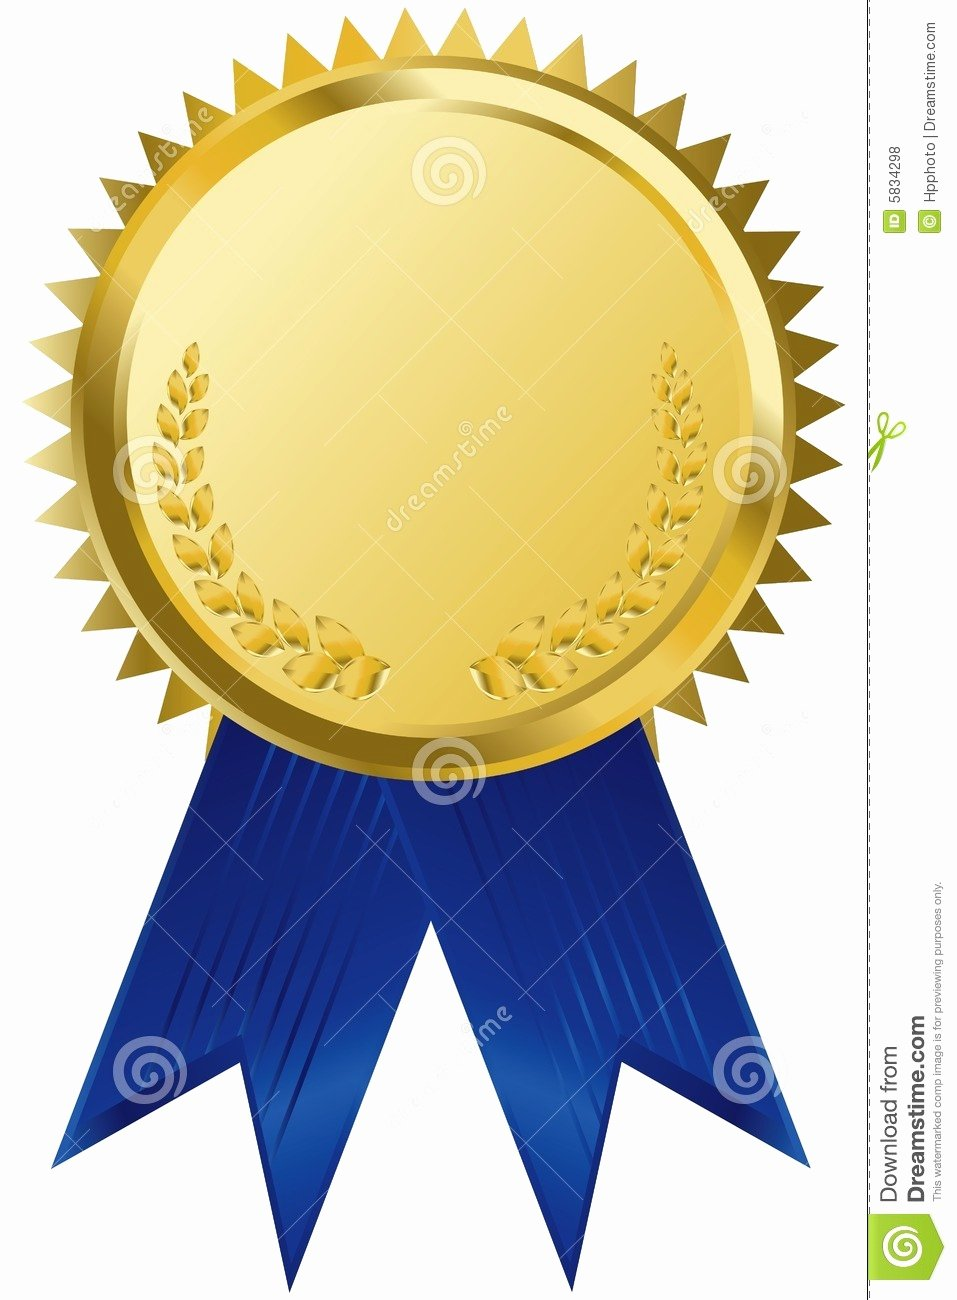 Picture Of Award Ribbon Beautiful Gold Award Ribbons Stock Vector Illustration Of event